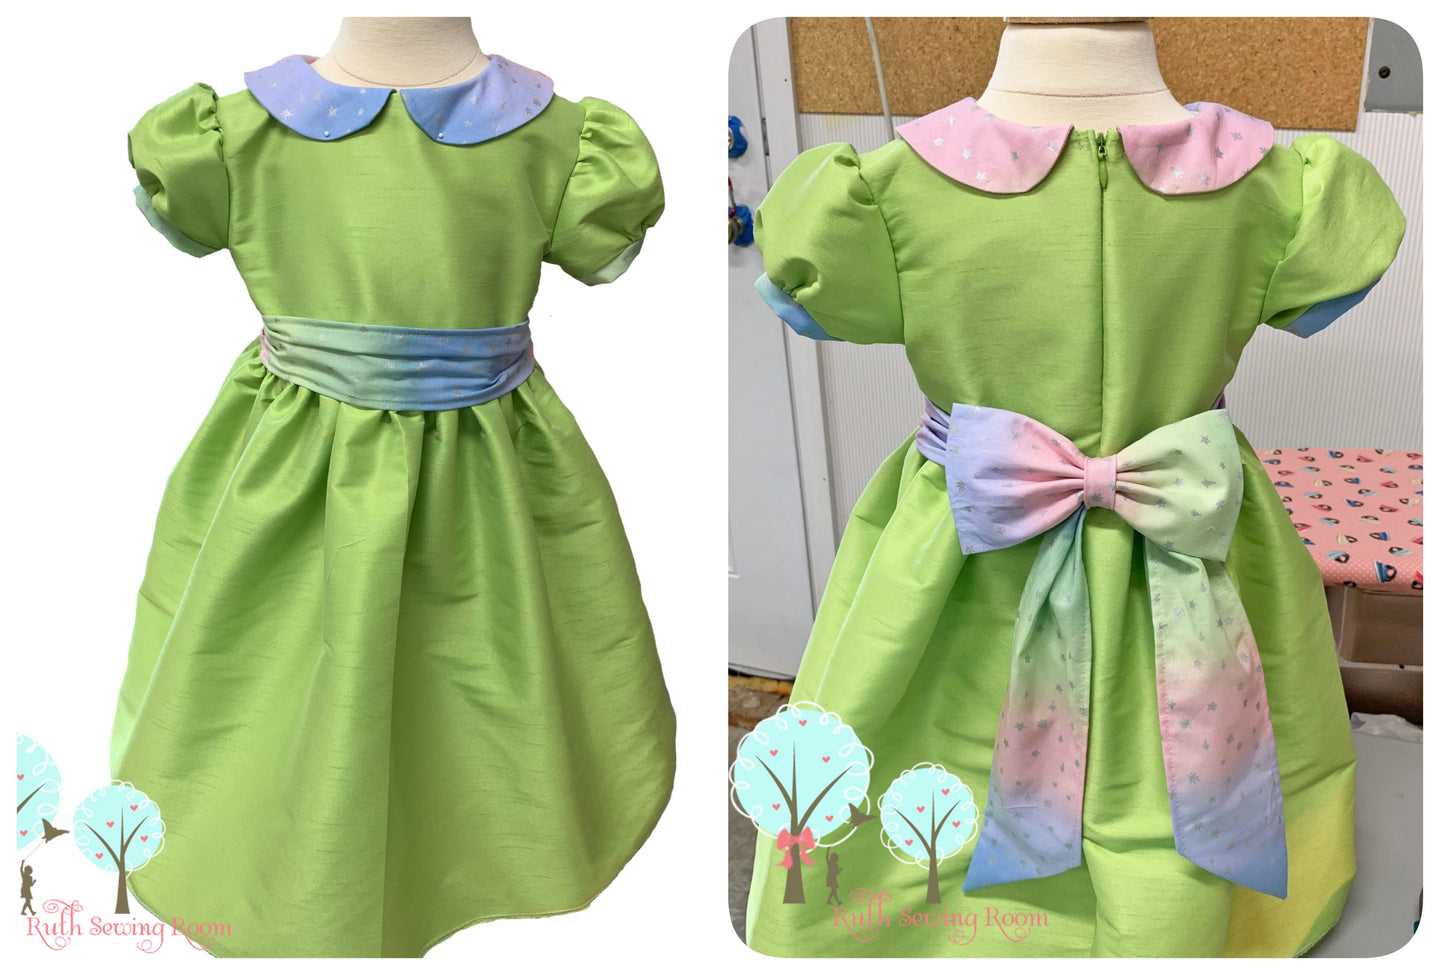 Beauty - Sunday Best - Poly Silk Dupioni  Apple Green  - Wedding Flower Girl - Easter - Tea Party Dress - Ready To Ship size 18m/24m